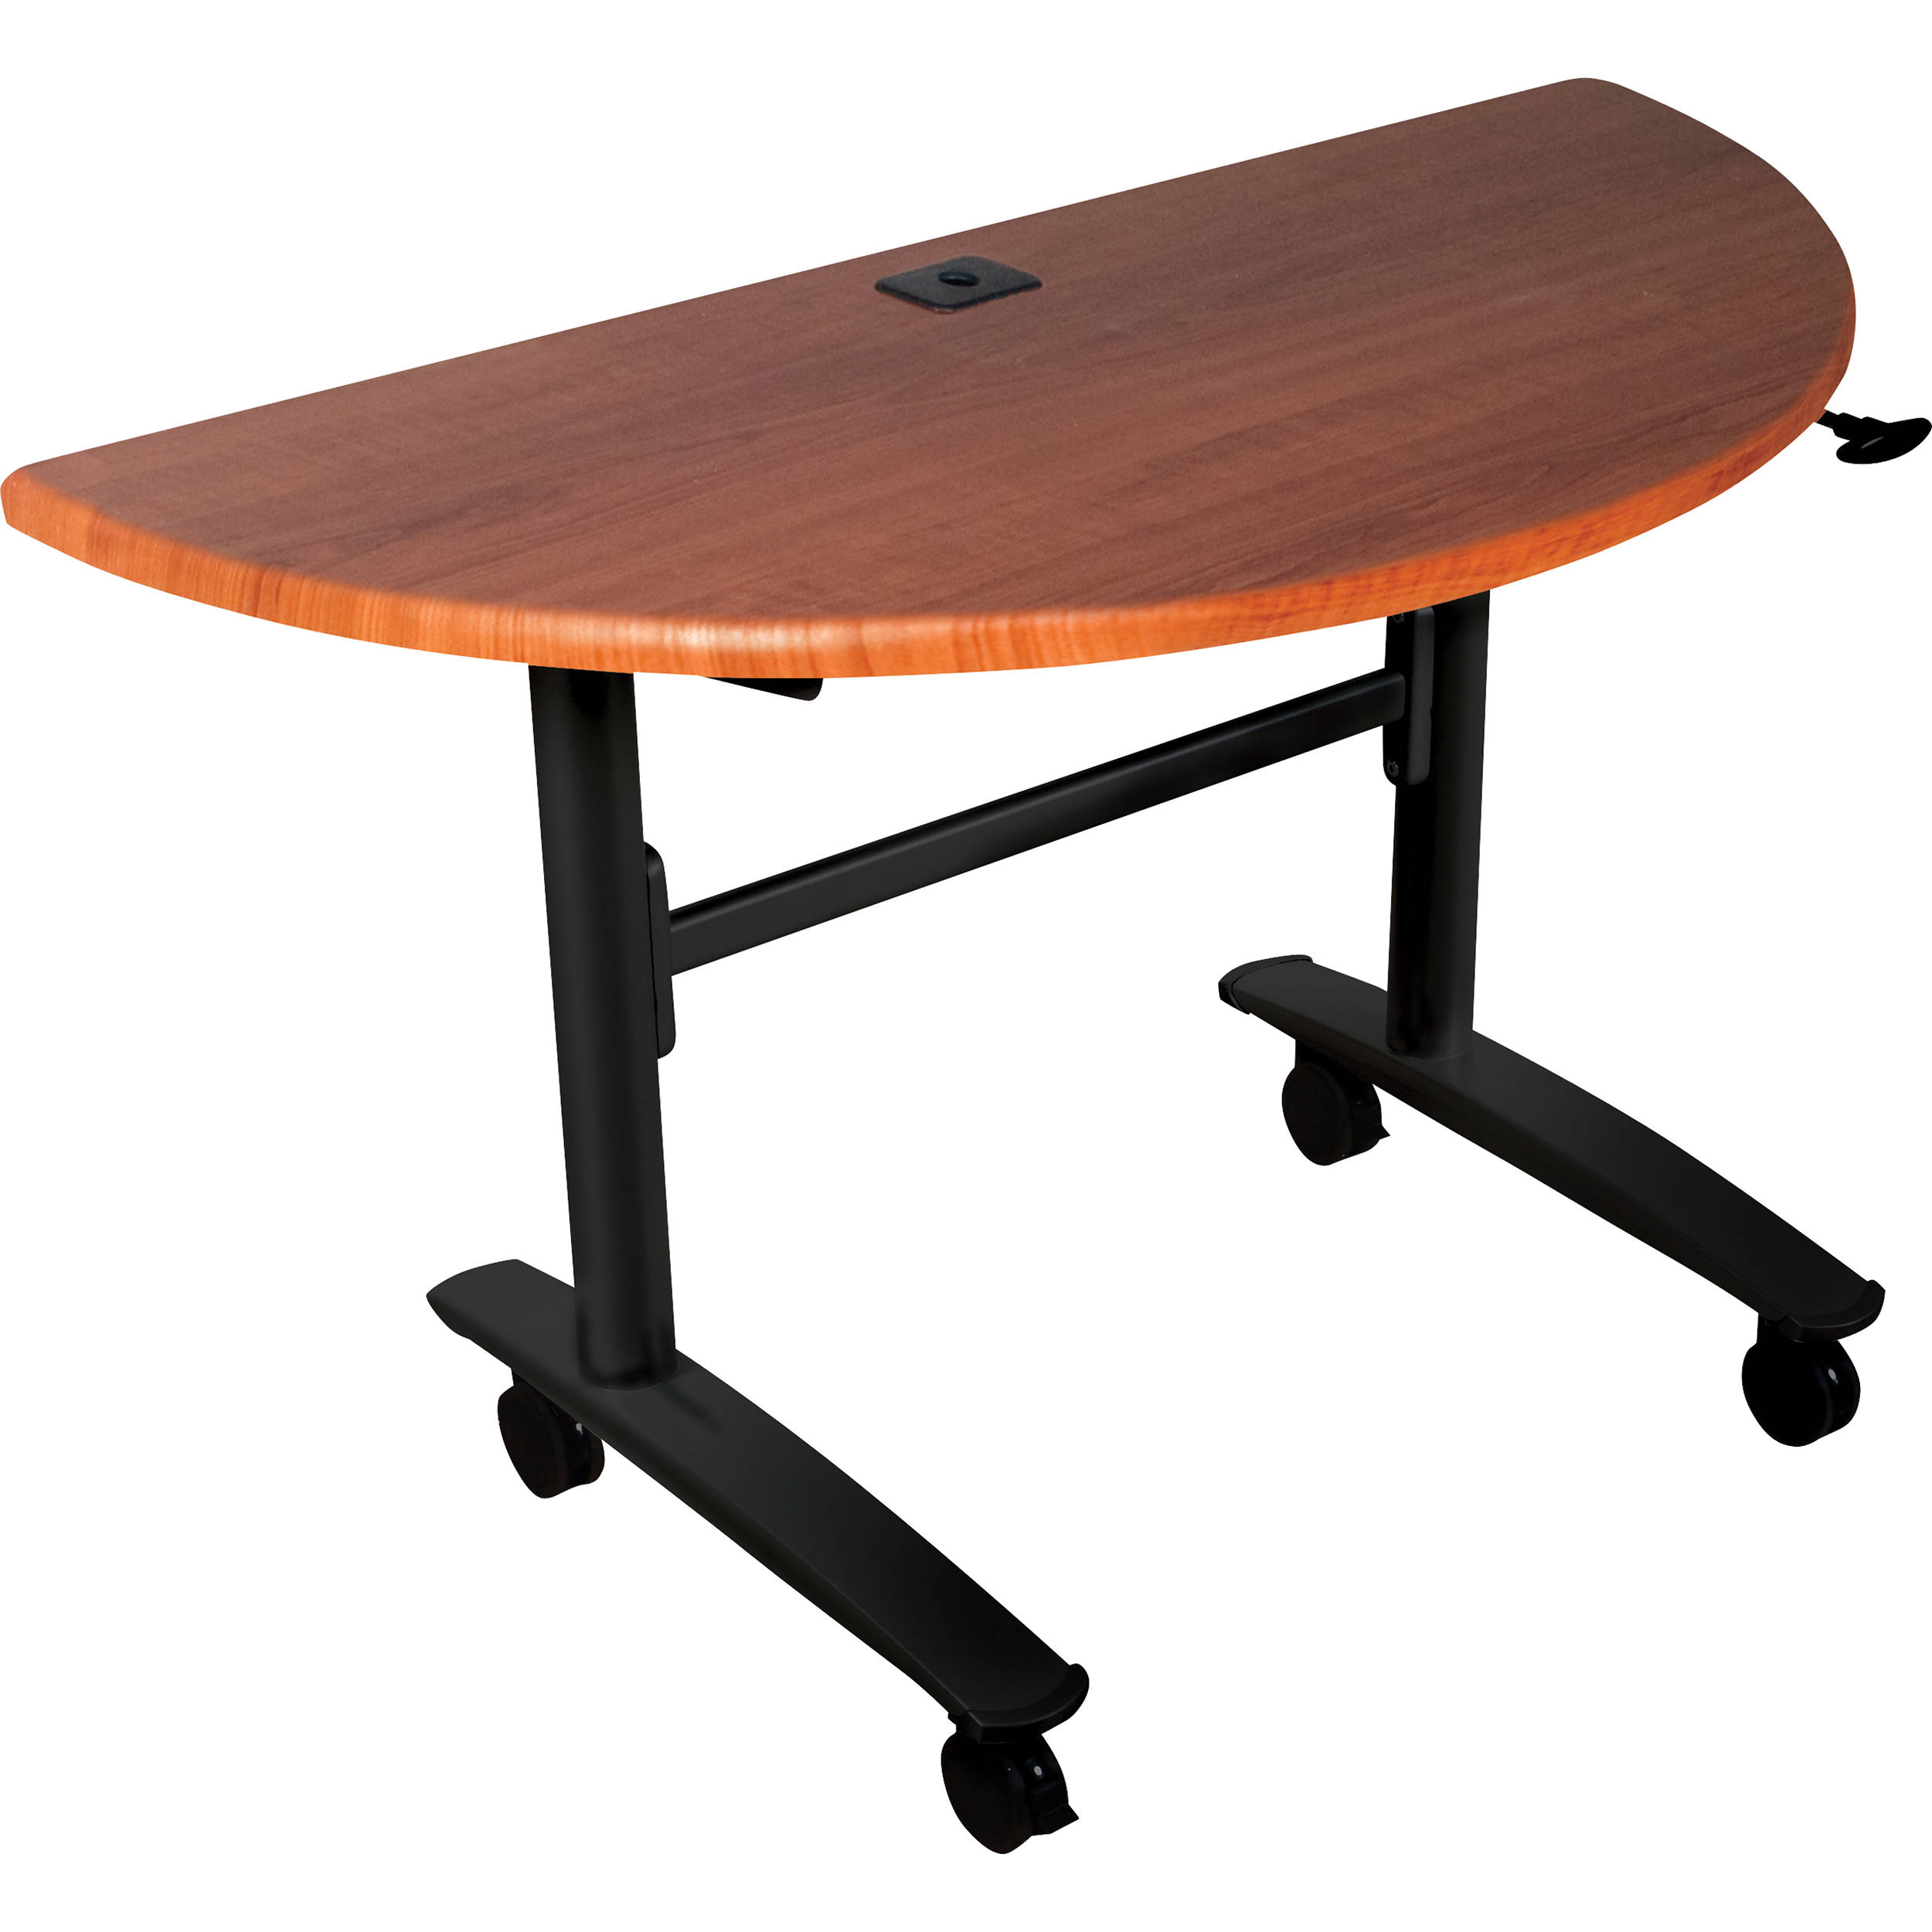 Balt 89999 Lumina Half Round Table (Black Cherry)